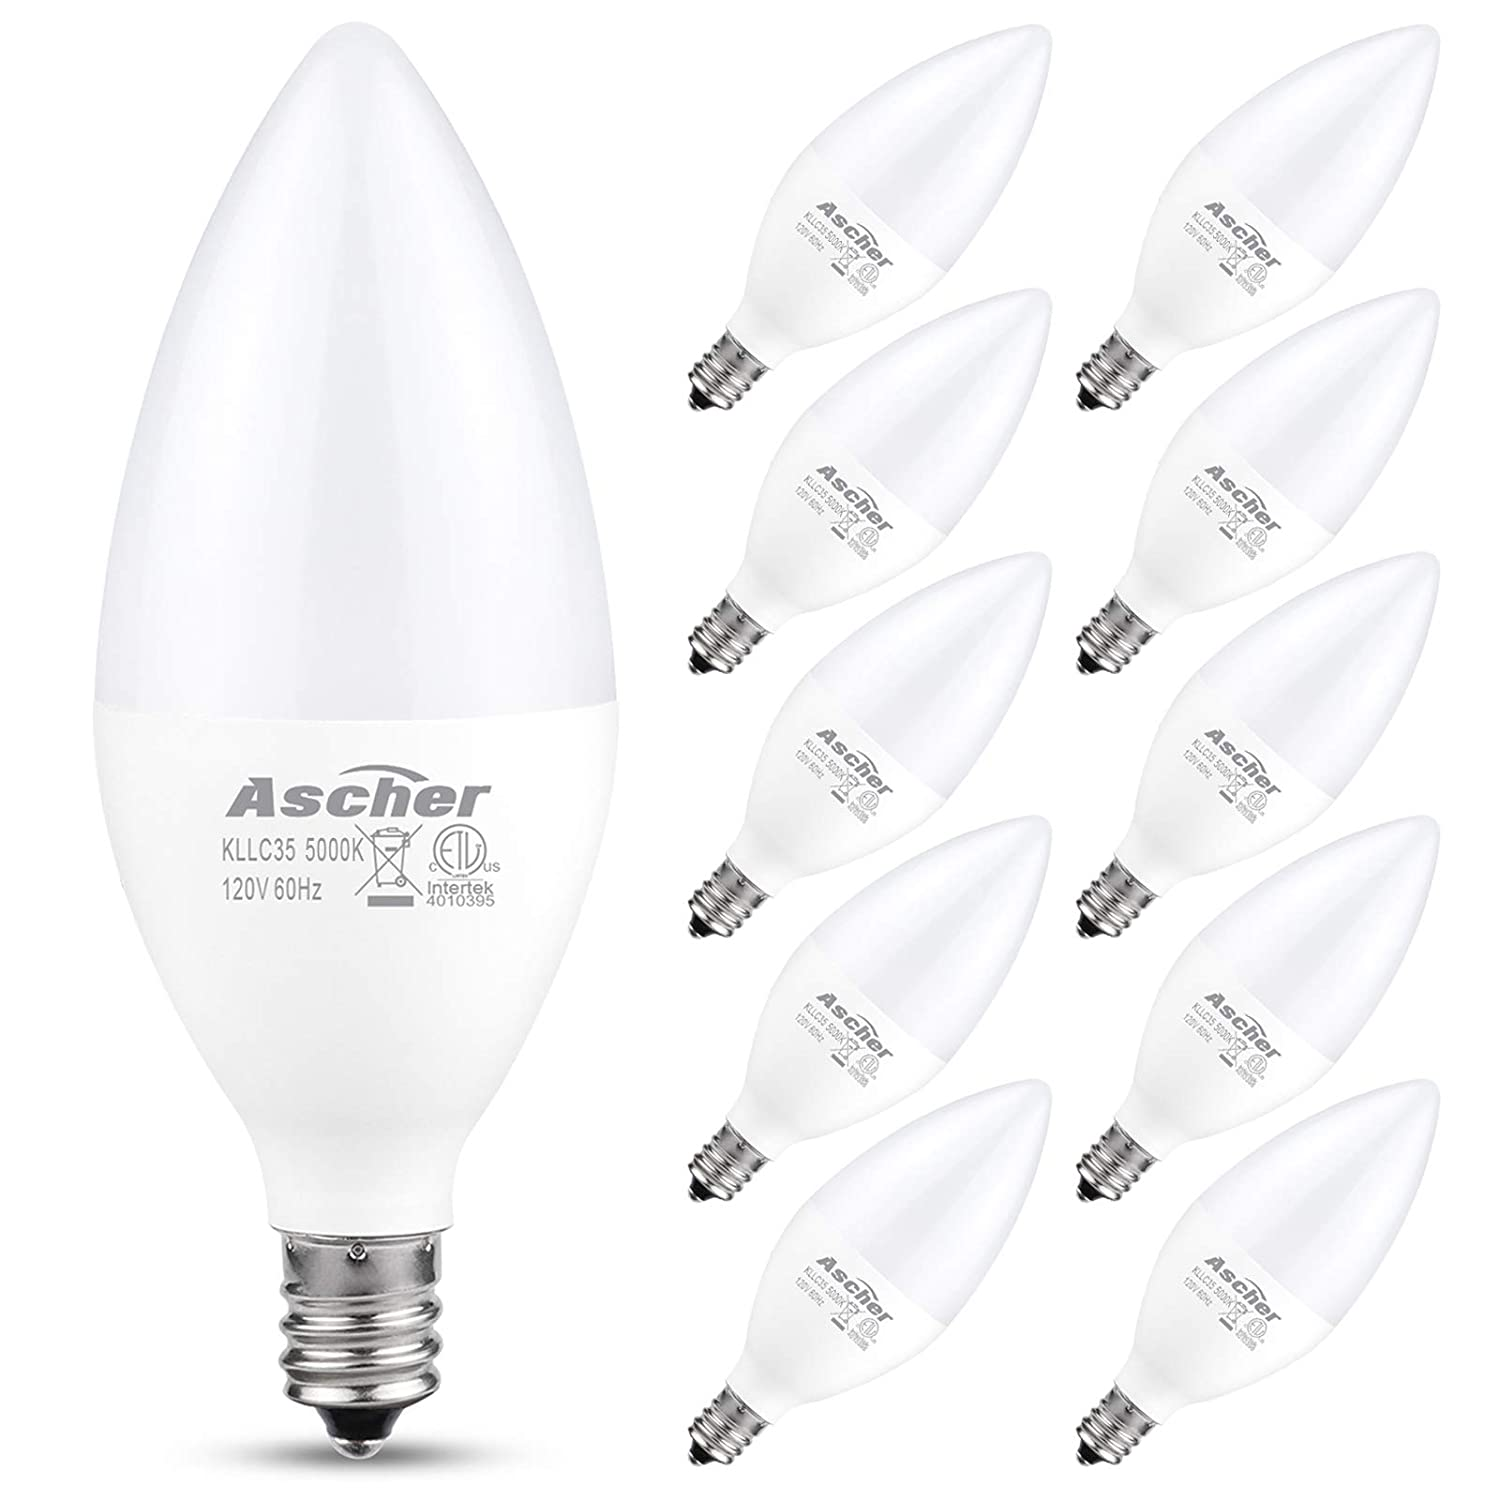 Ascher E12 LED Candelabra Light Bulbs, Equivalent 60W, 550 Lumens, Daylight White 5000K, Candelabra Base, Non-dimmable, Chandelier Bulb, Pack of 10